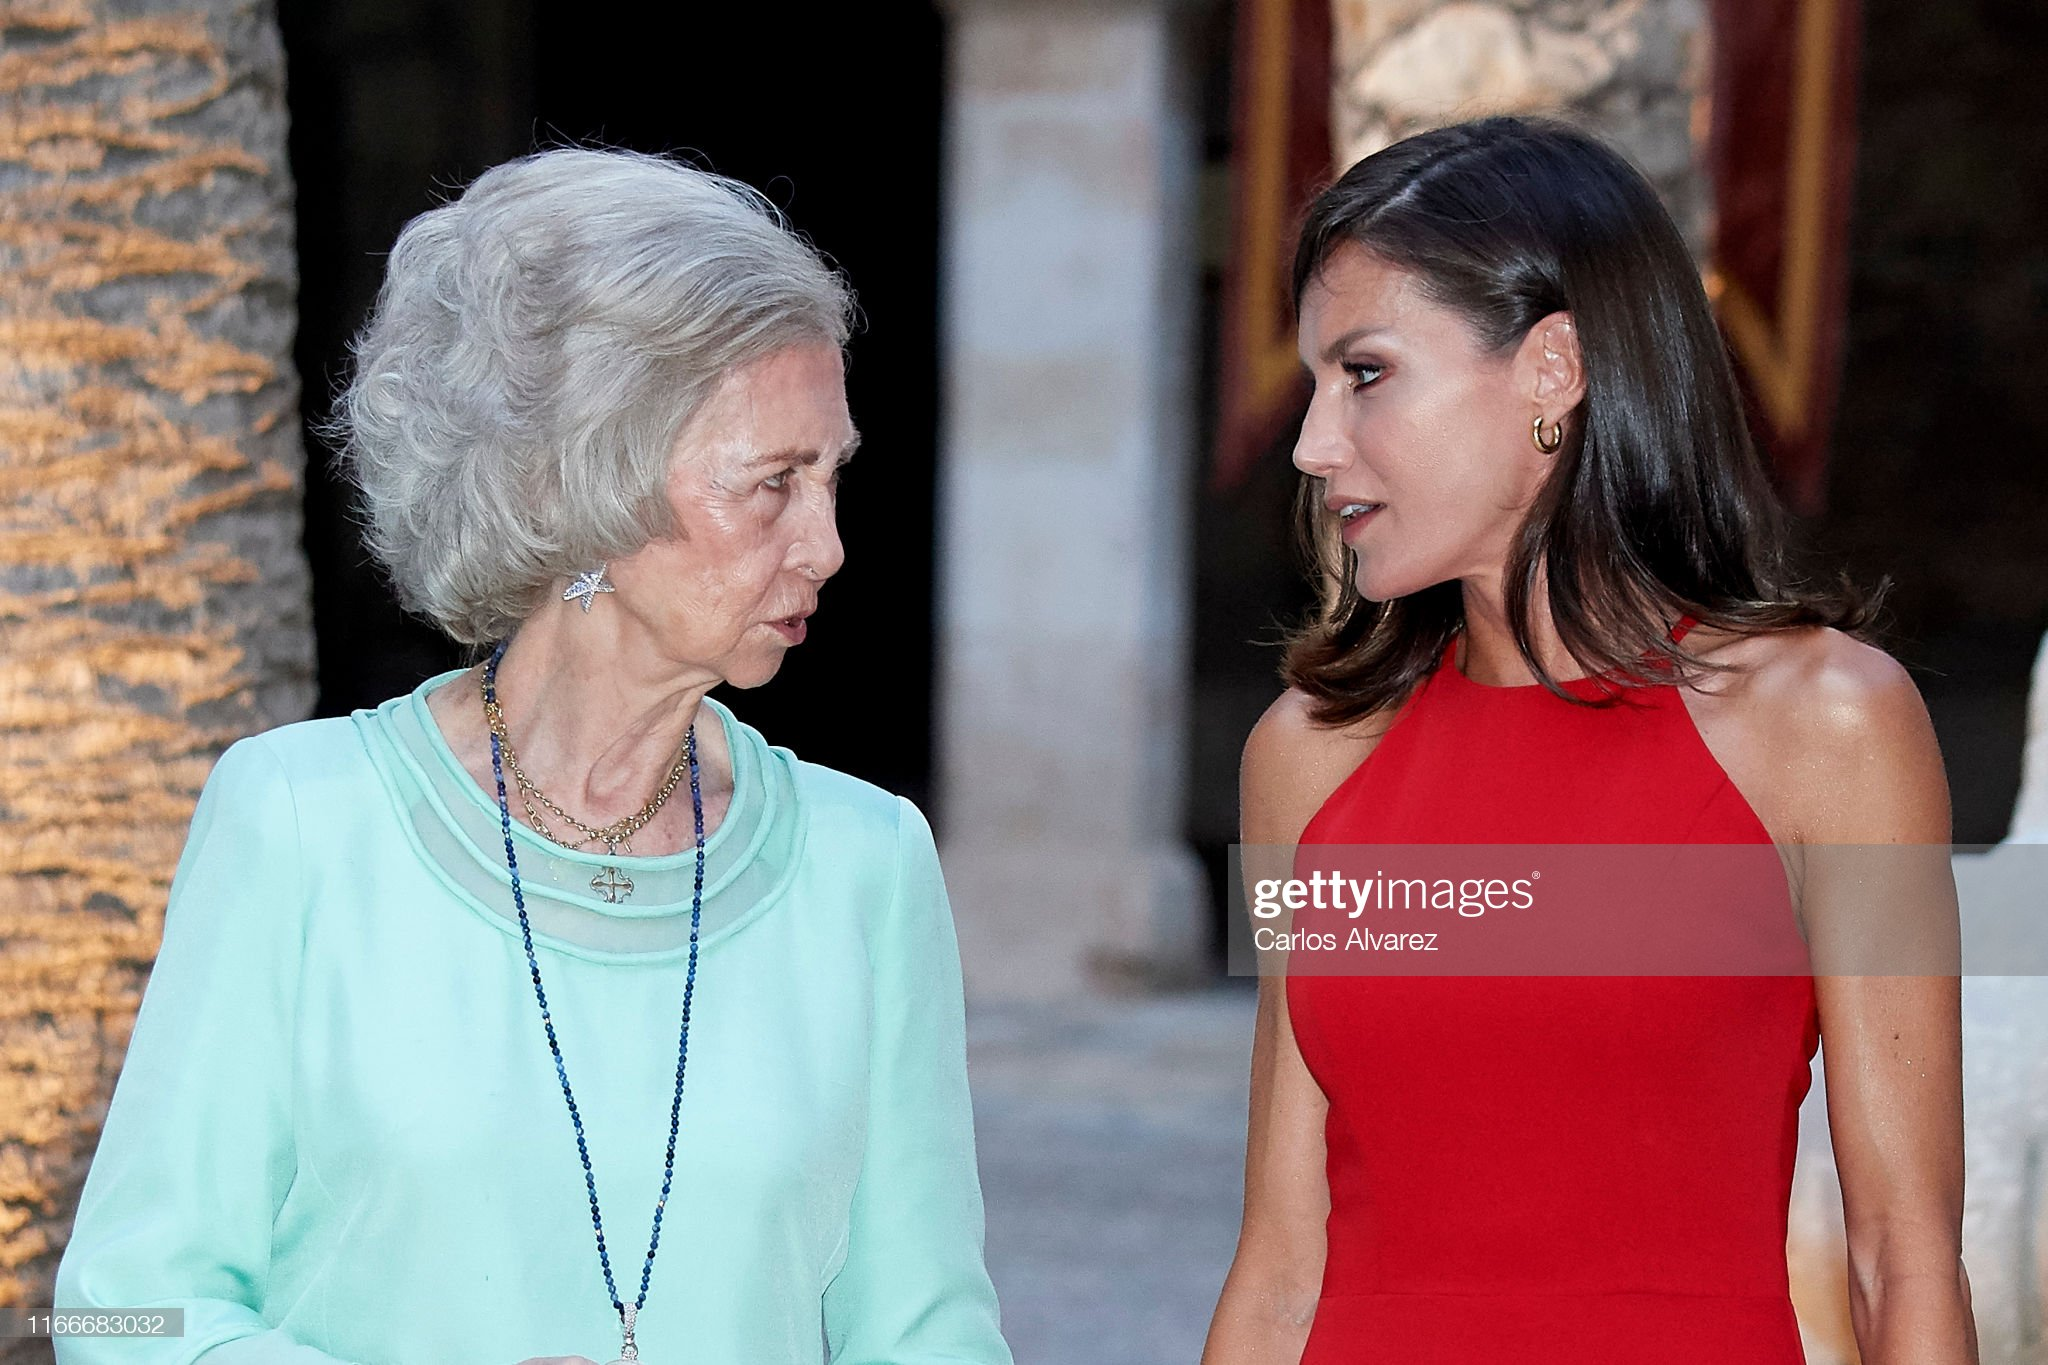 https://media.gettyimages.com/photos/queen-letizia-of-spain-and-queen-sofia-host-a-dinner-for-authorities-picture-id1166683032?s=2048x2048